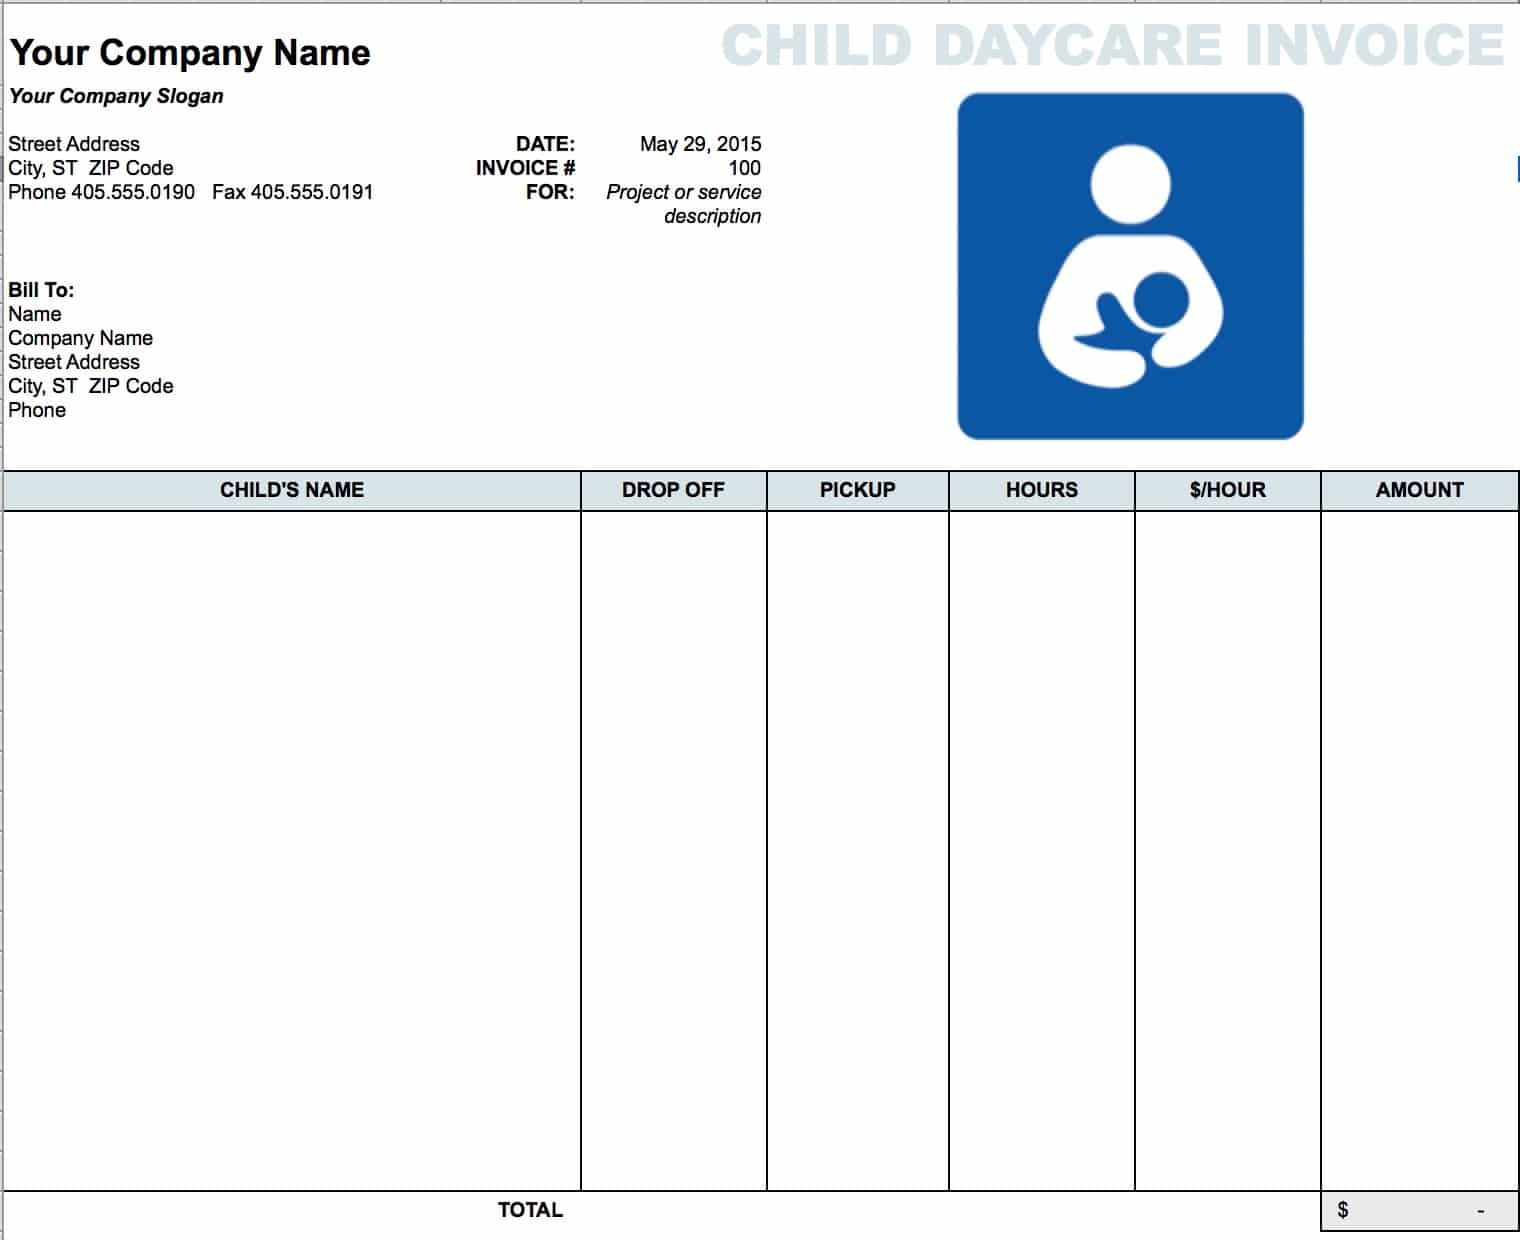 Free Daycare Child Invoice Template Excel PDF Word Doc - Invoice examples in word for service business